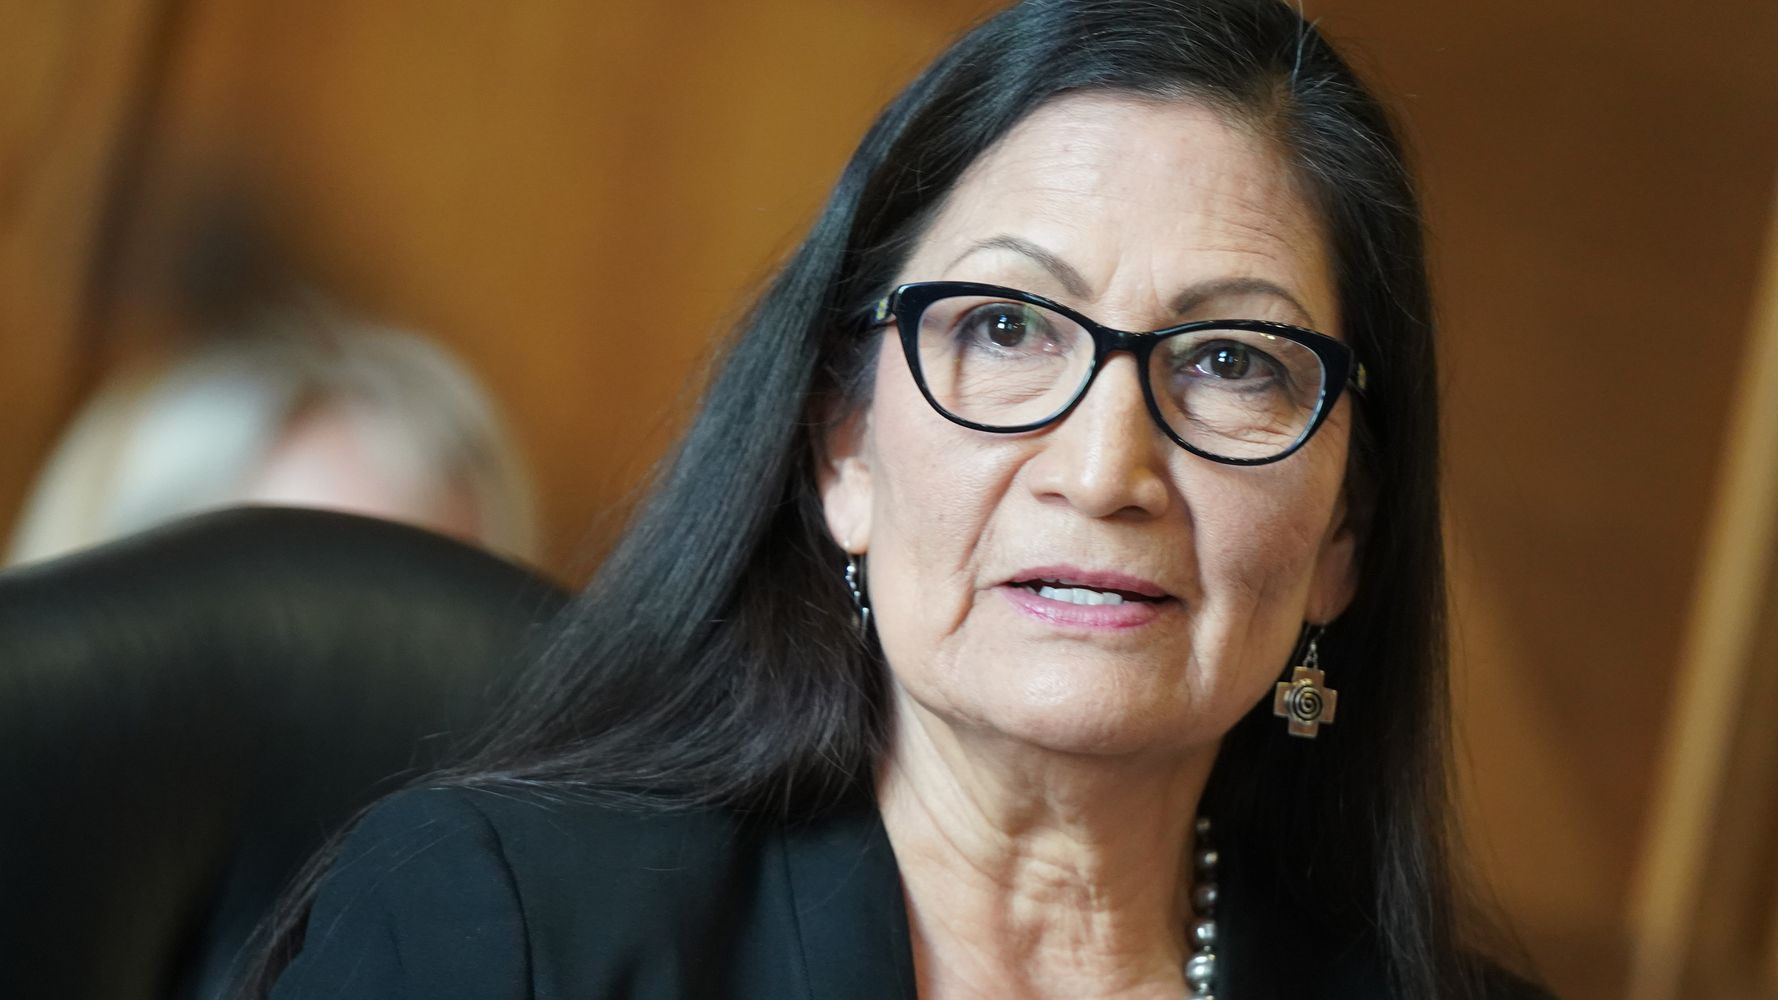 Not One Republican Asked Deb Haaland About Her Vision For Indian Country